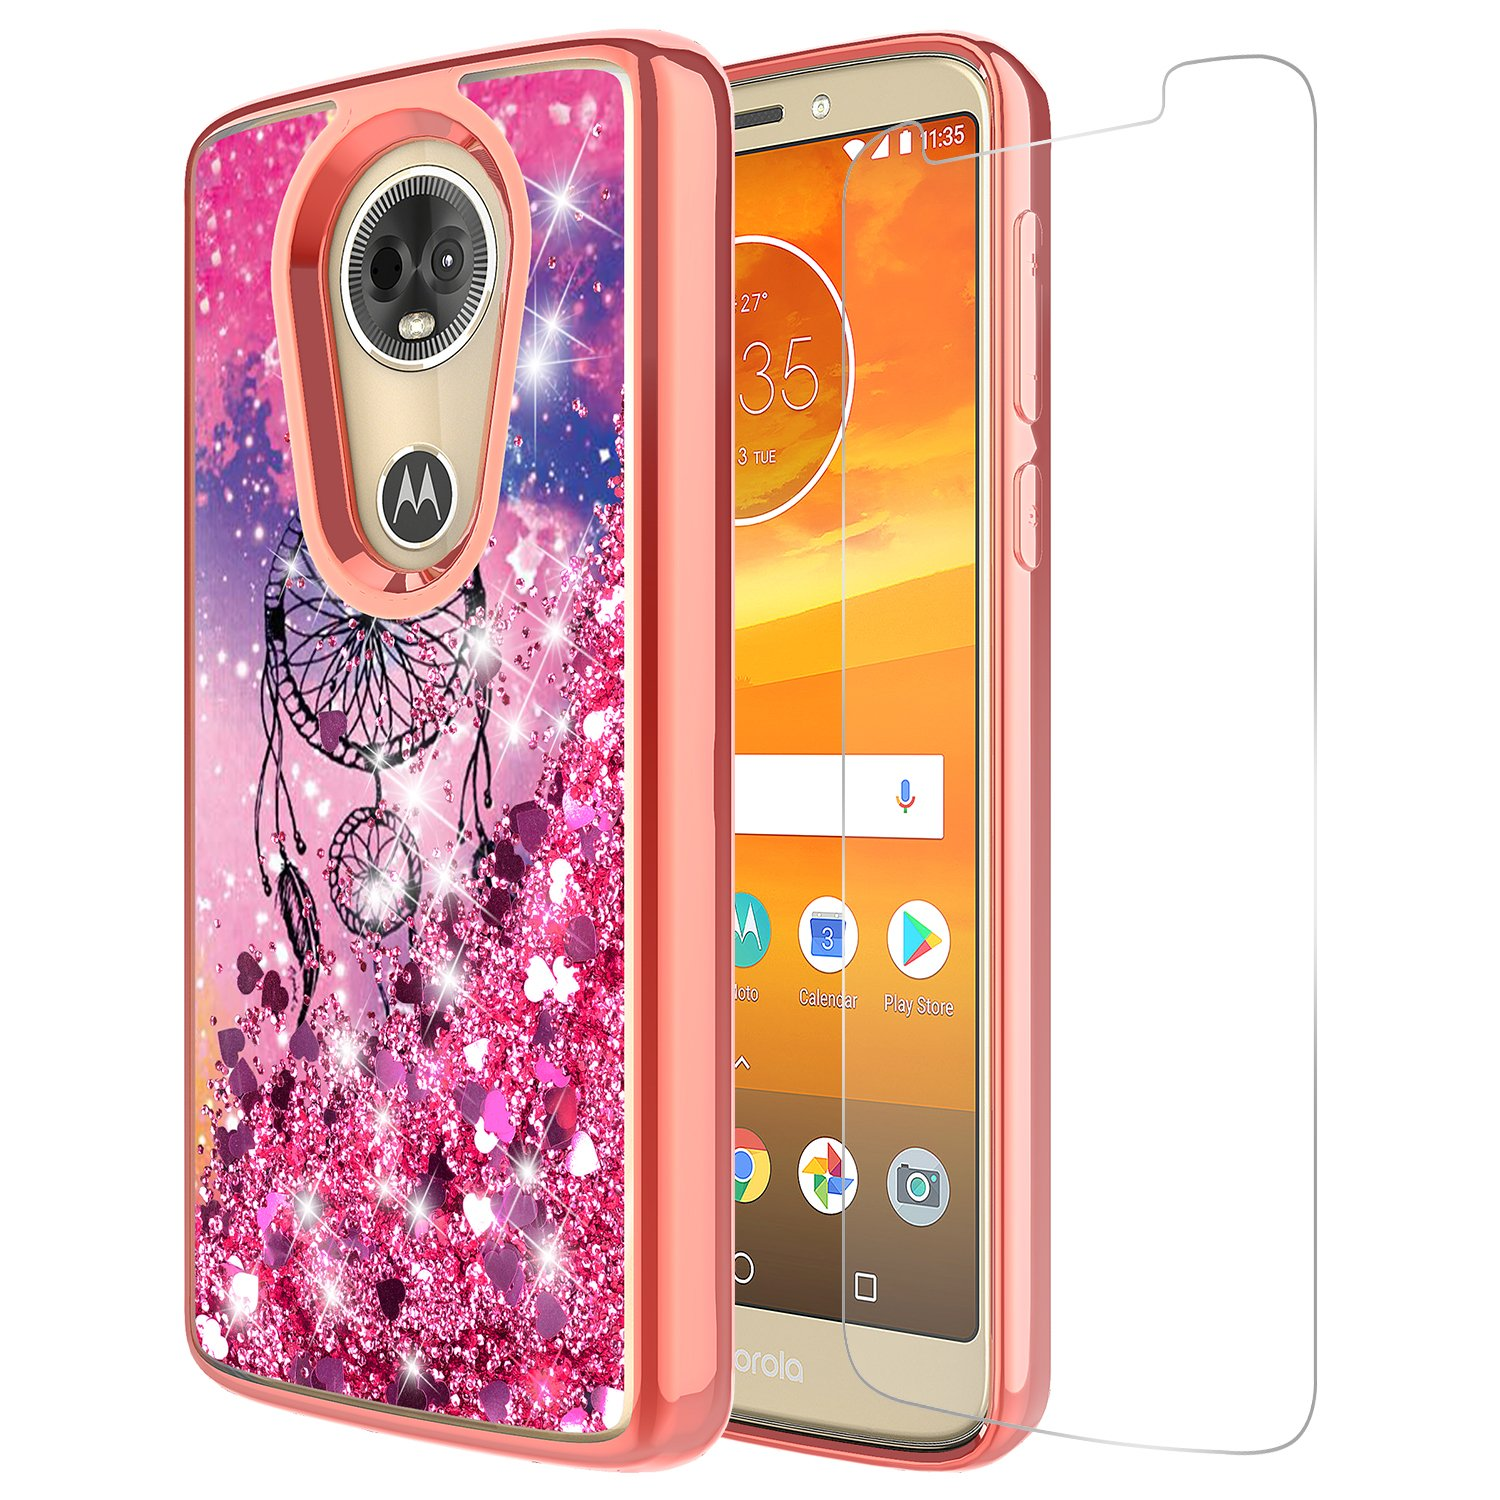 Moto G6 Play Case, Moto G6 Forge Case With Tempered Glass Screen Protector Cute Sparkly Quicksand for Teen Girls Women Soft Clear TPU Bumper Cover For Motorola Moto E5 (Dream Catcher)